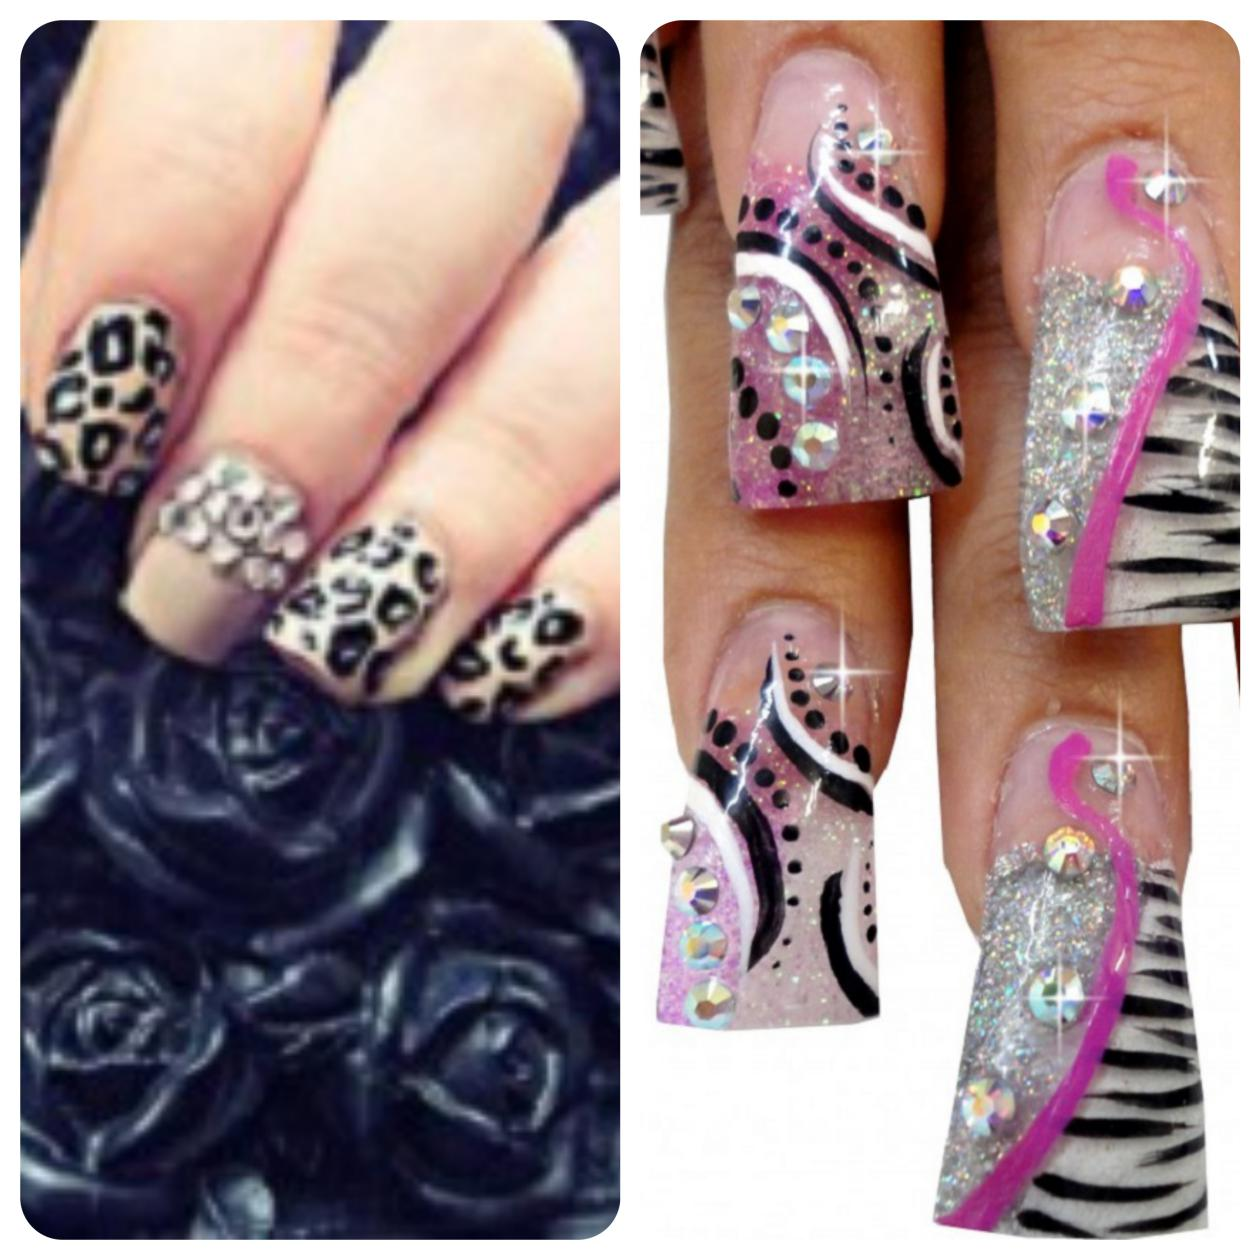 Animal_style_nail_art_new_design